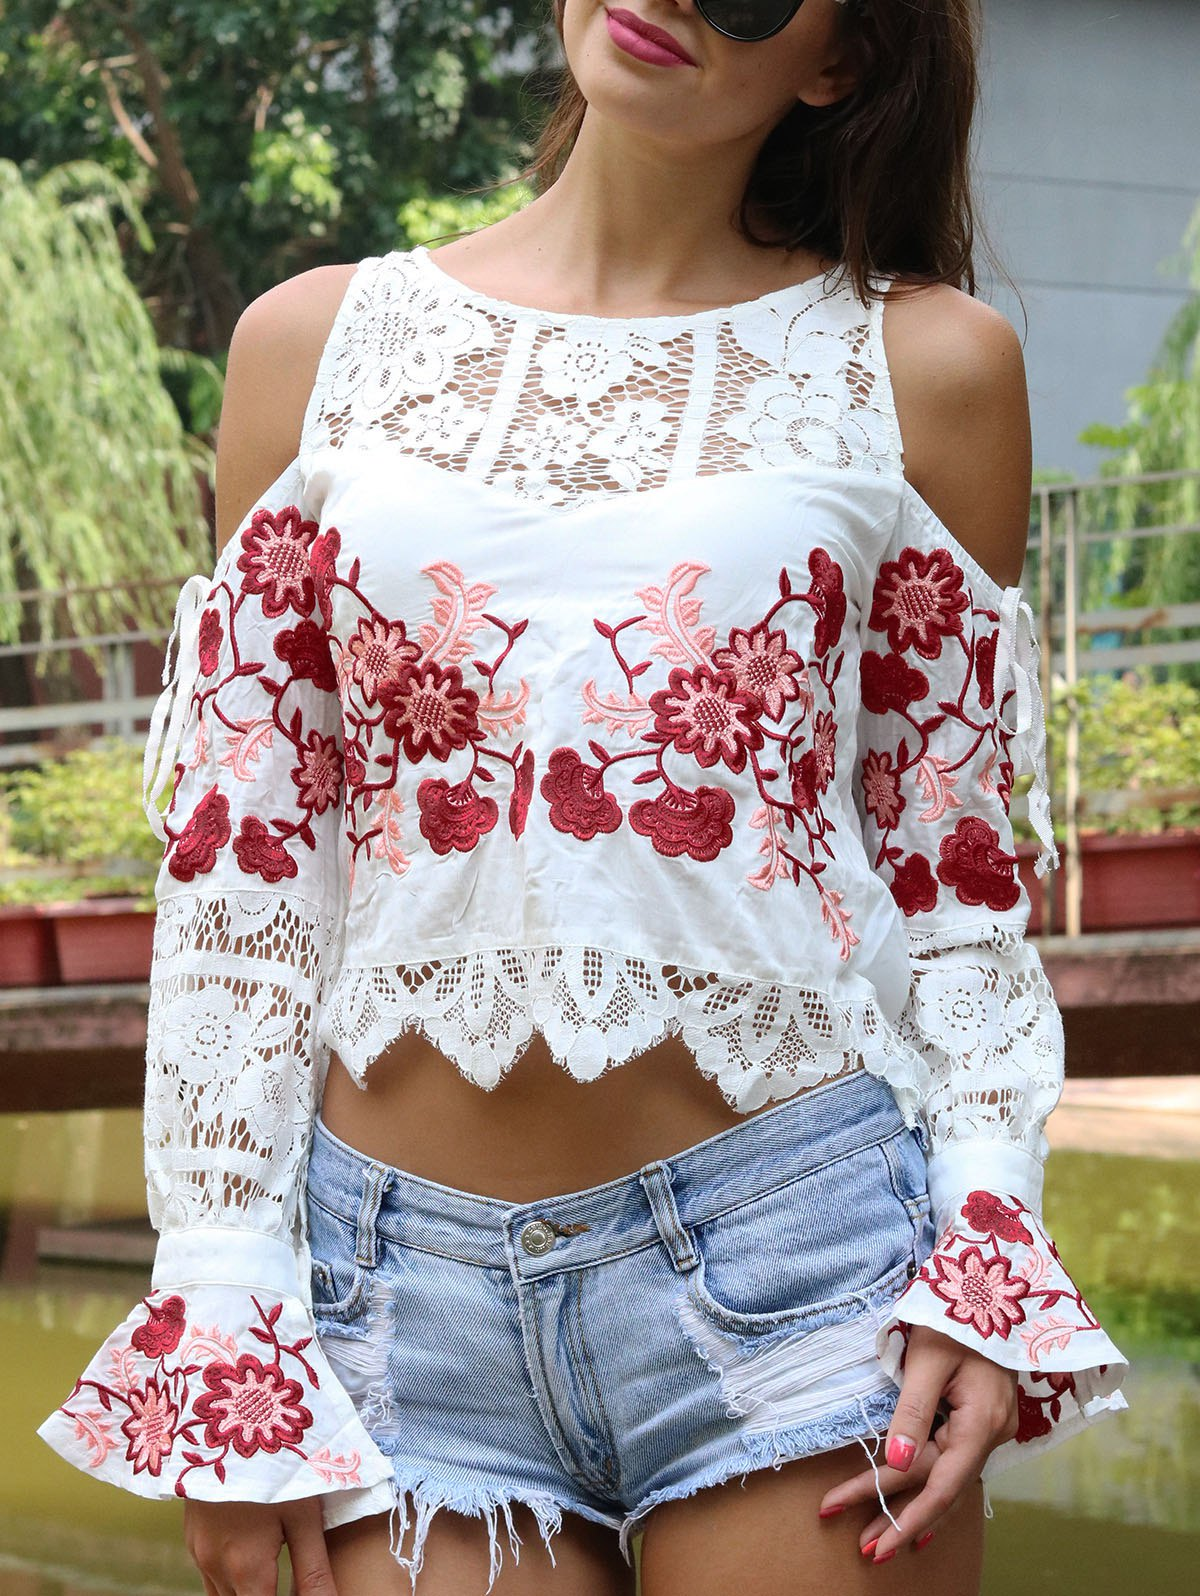 Sweet Women's Floral Embroidered Cold Shoulder Crop Top - WHITE XL